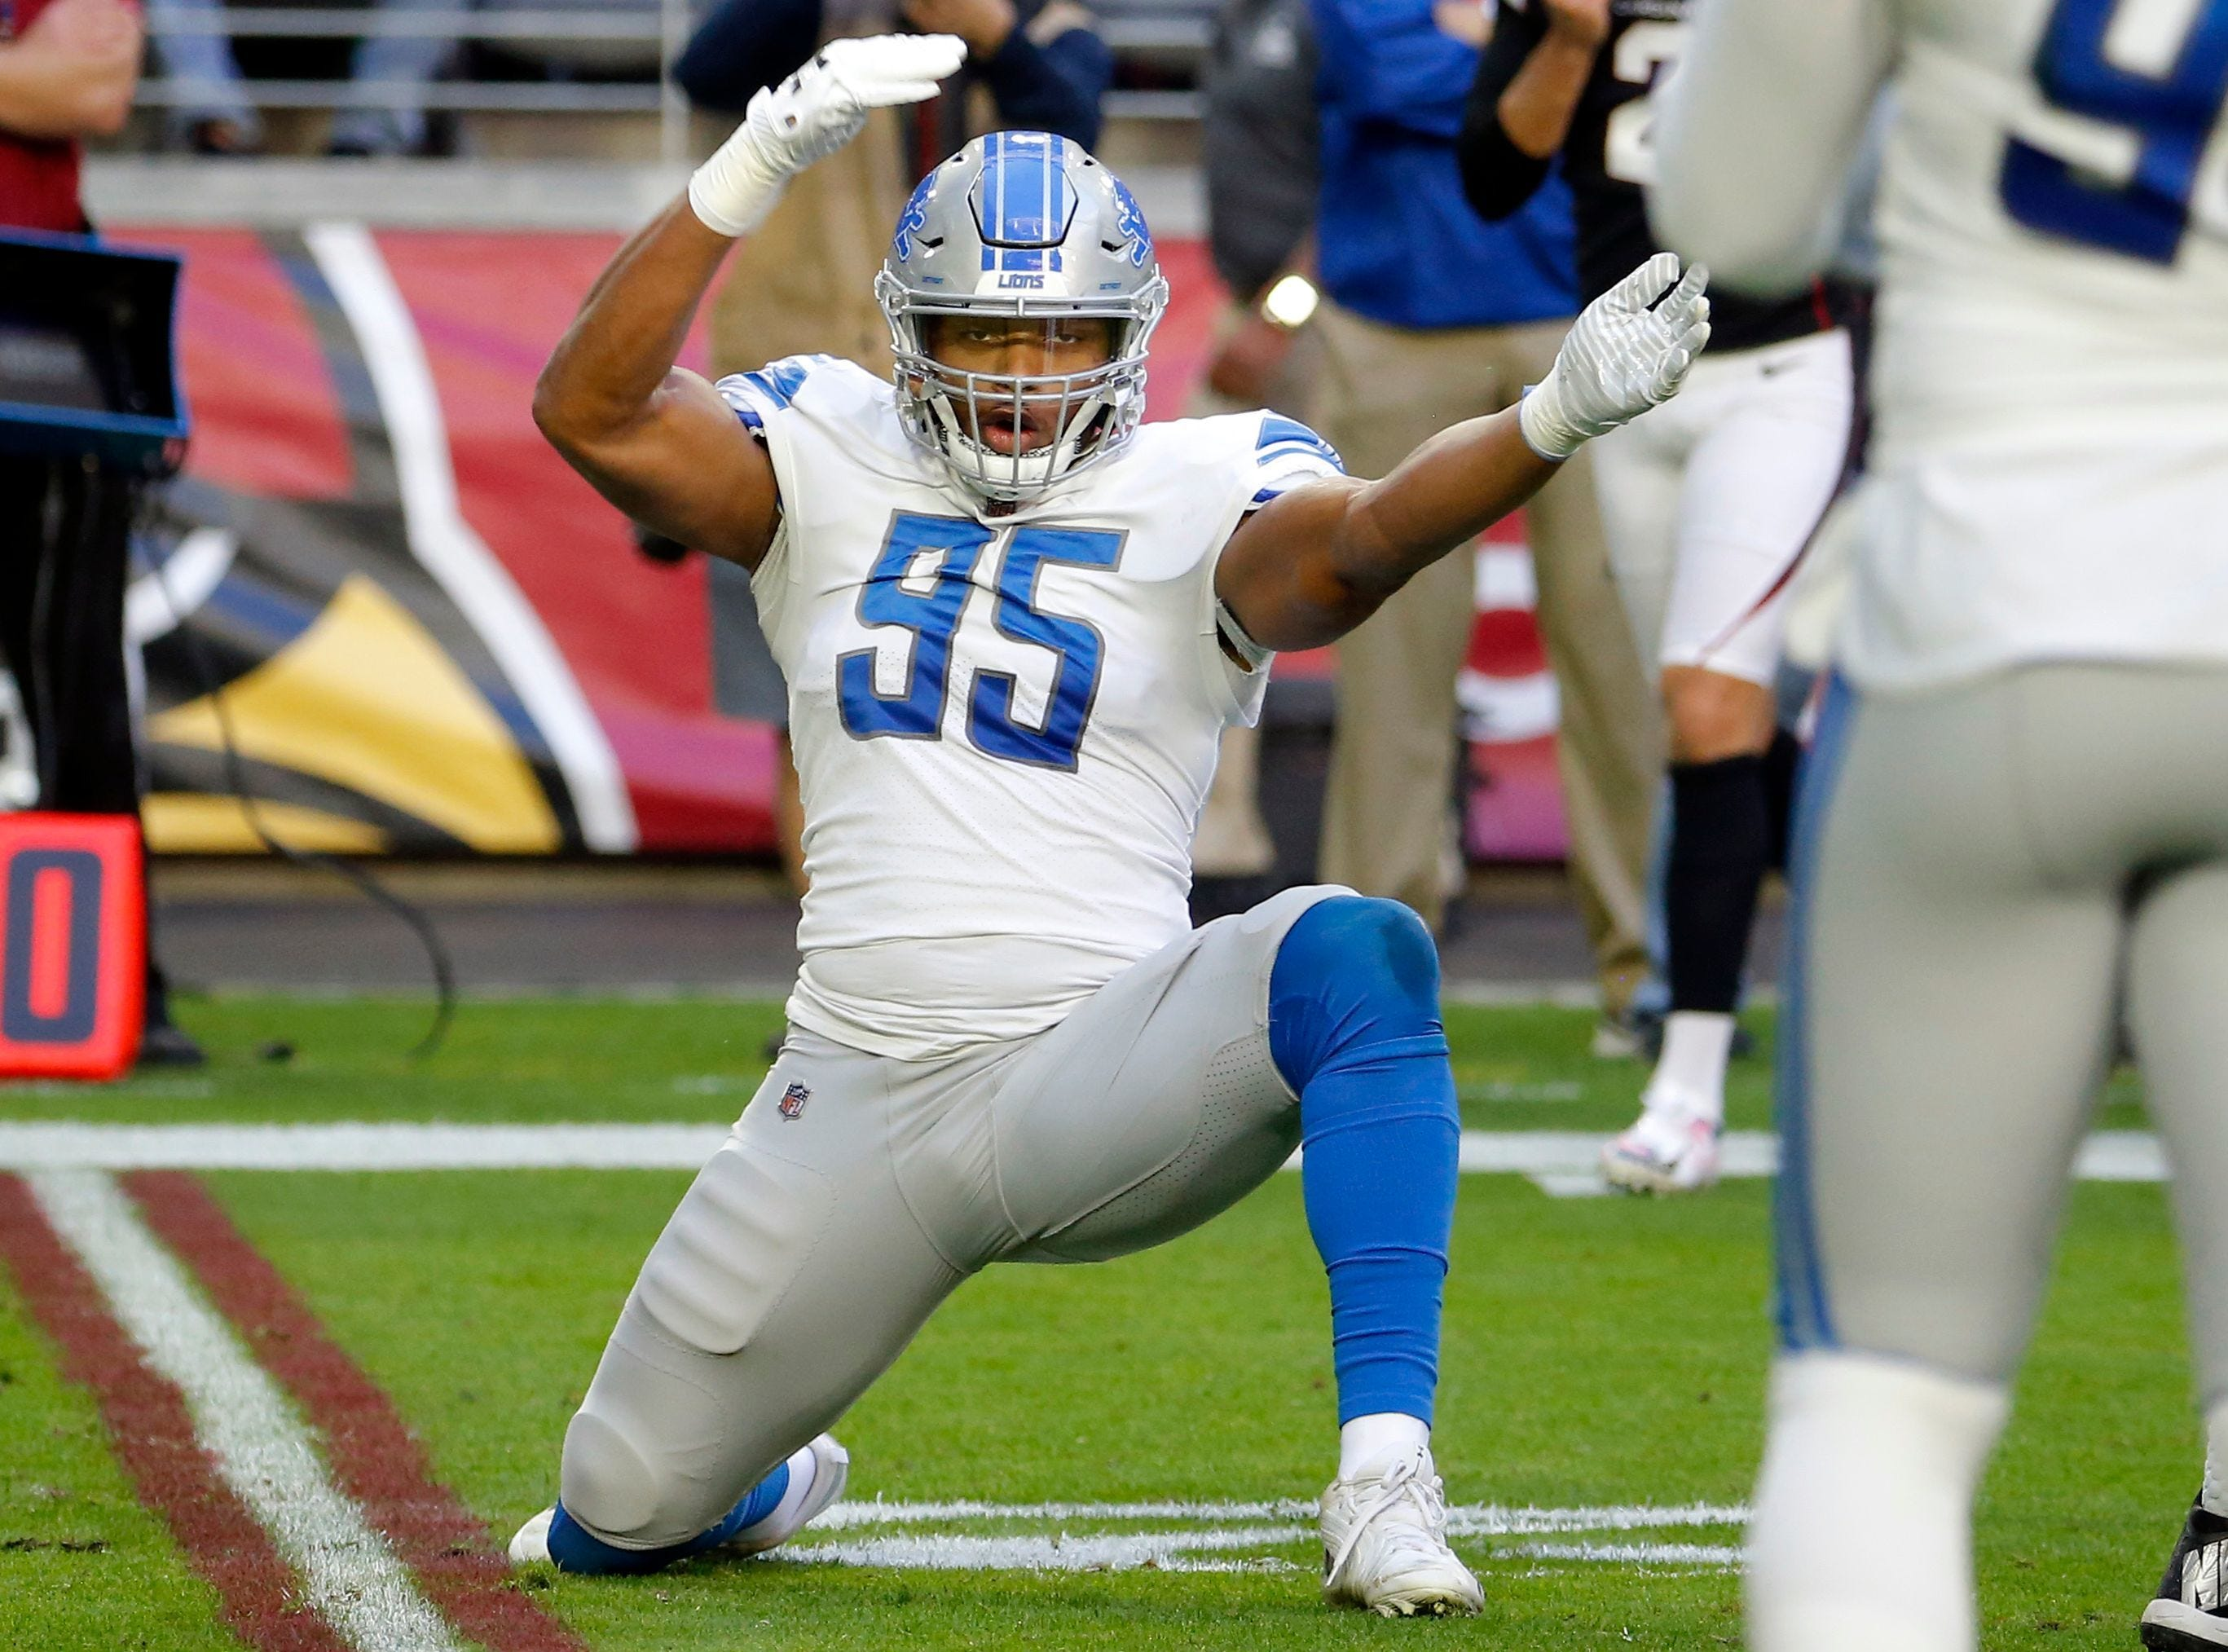 Lions defensive end Romeo Okwara celebrate his sack against the Cardinals during the first half of the Lions' 17-3 win on Sunday, Dec. 9, 2018, in Glendale, Ariz.